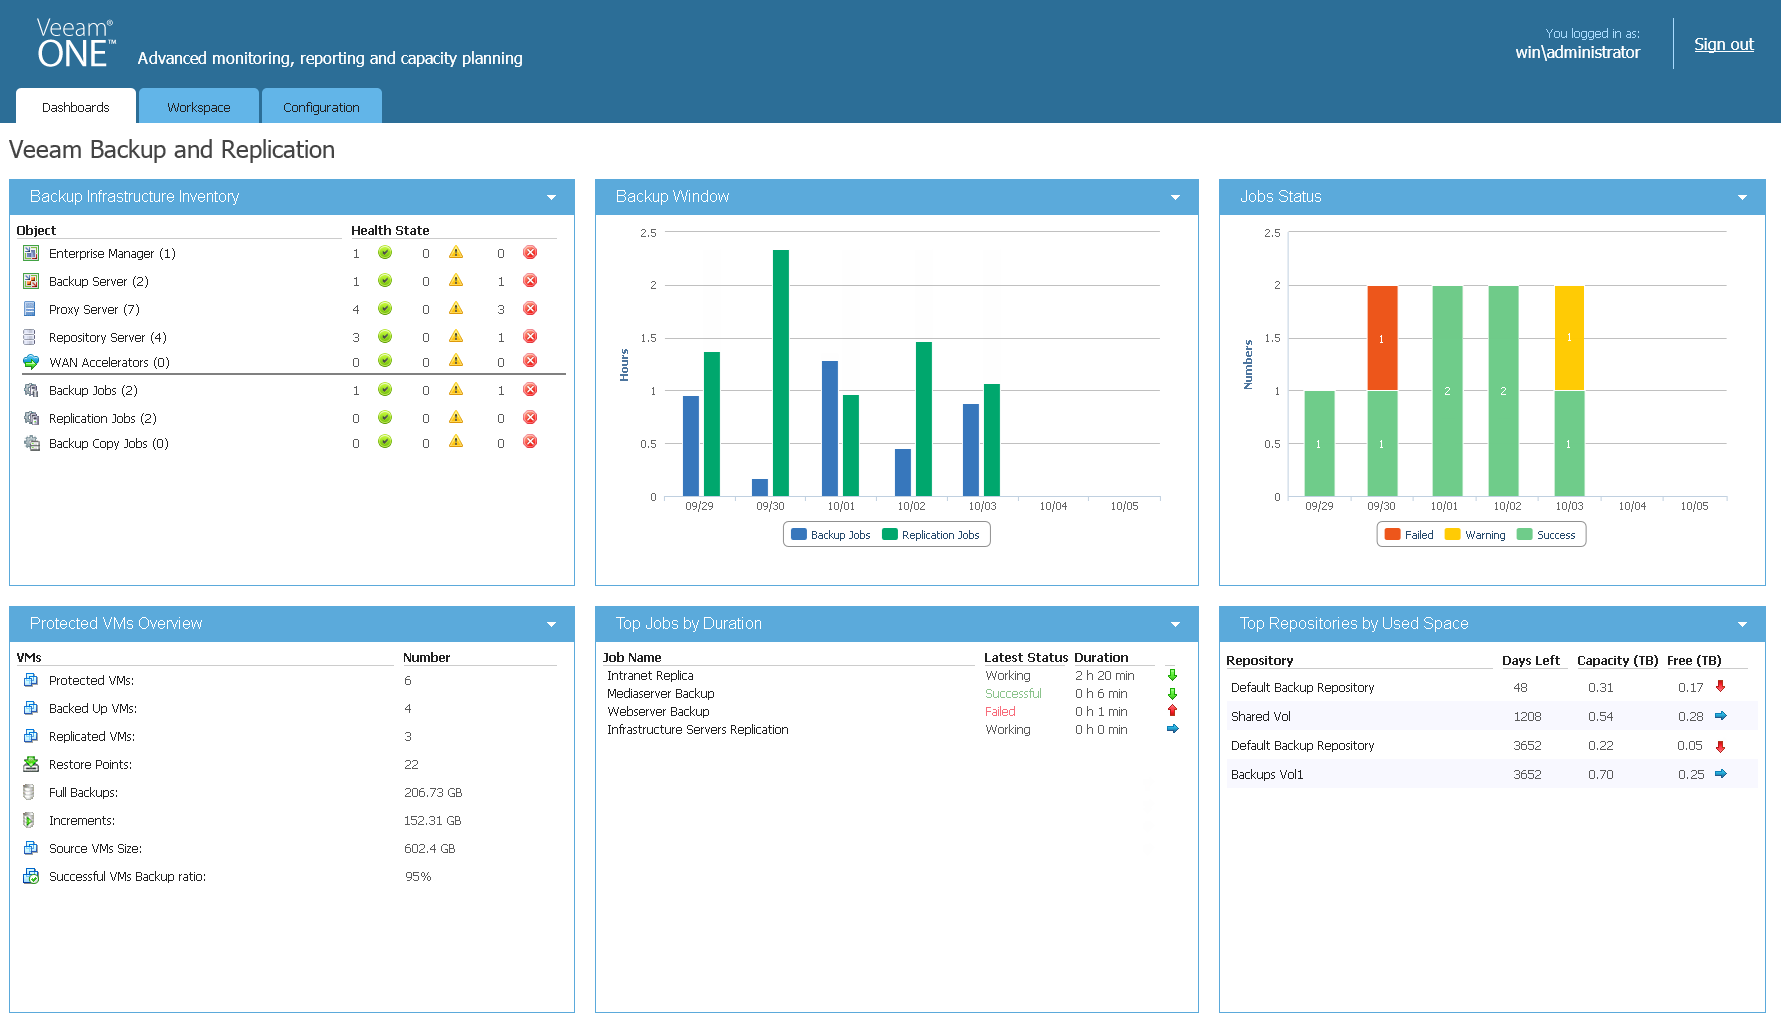 Veeam Backup & Replication summary dashboard